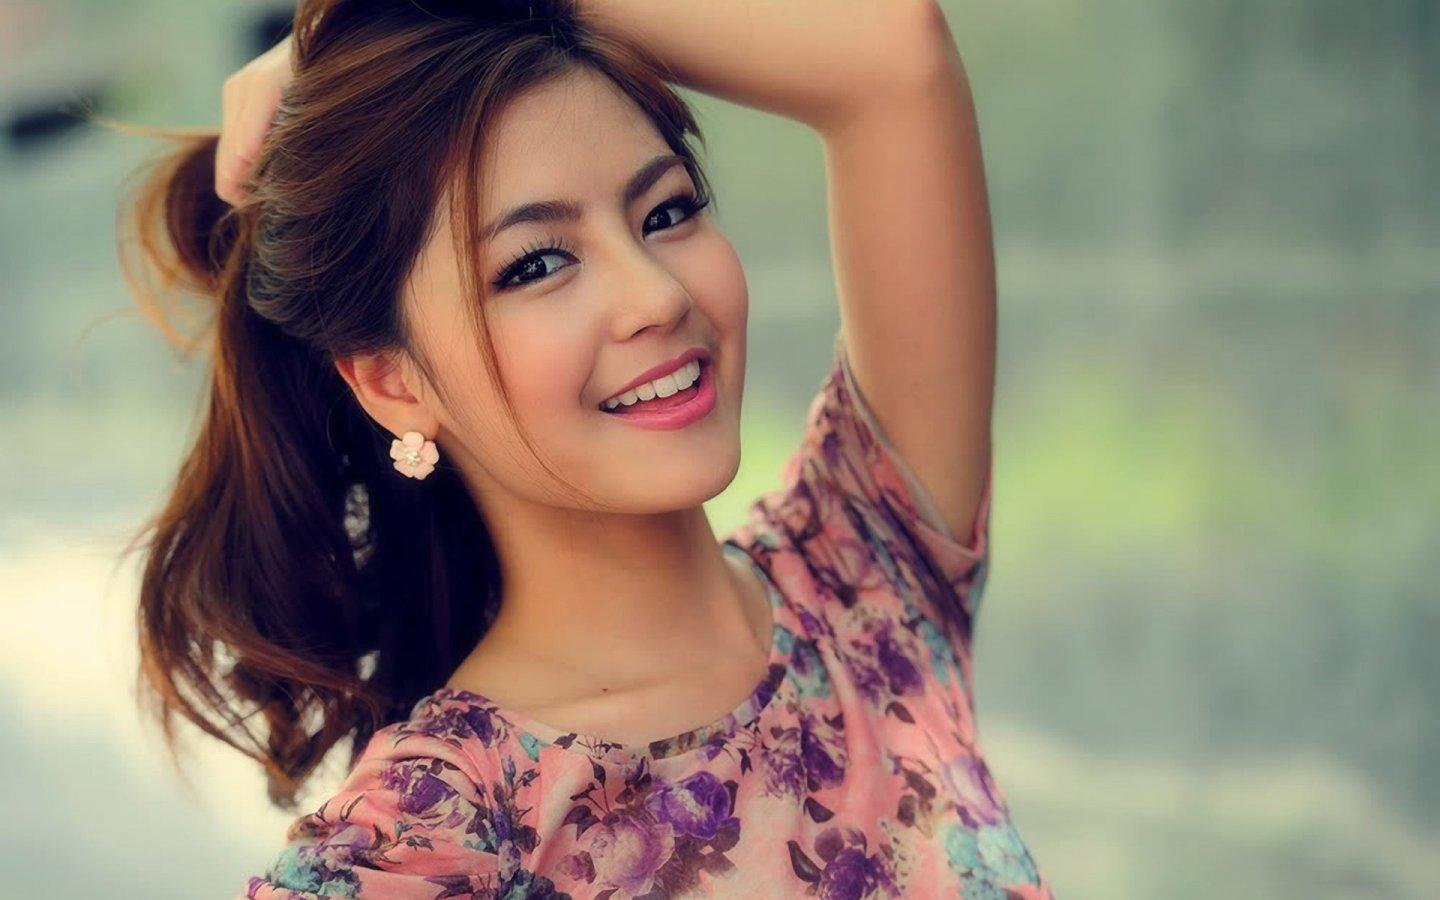 Beautiful Lady Wallpapers Wallpaper Cave